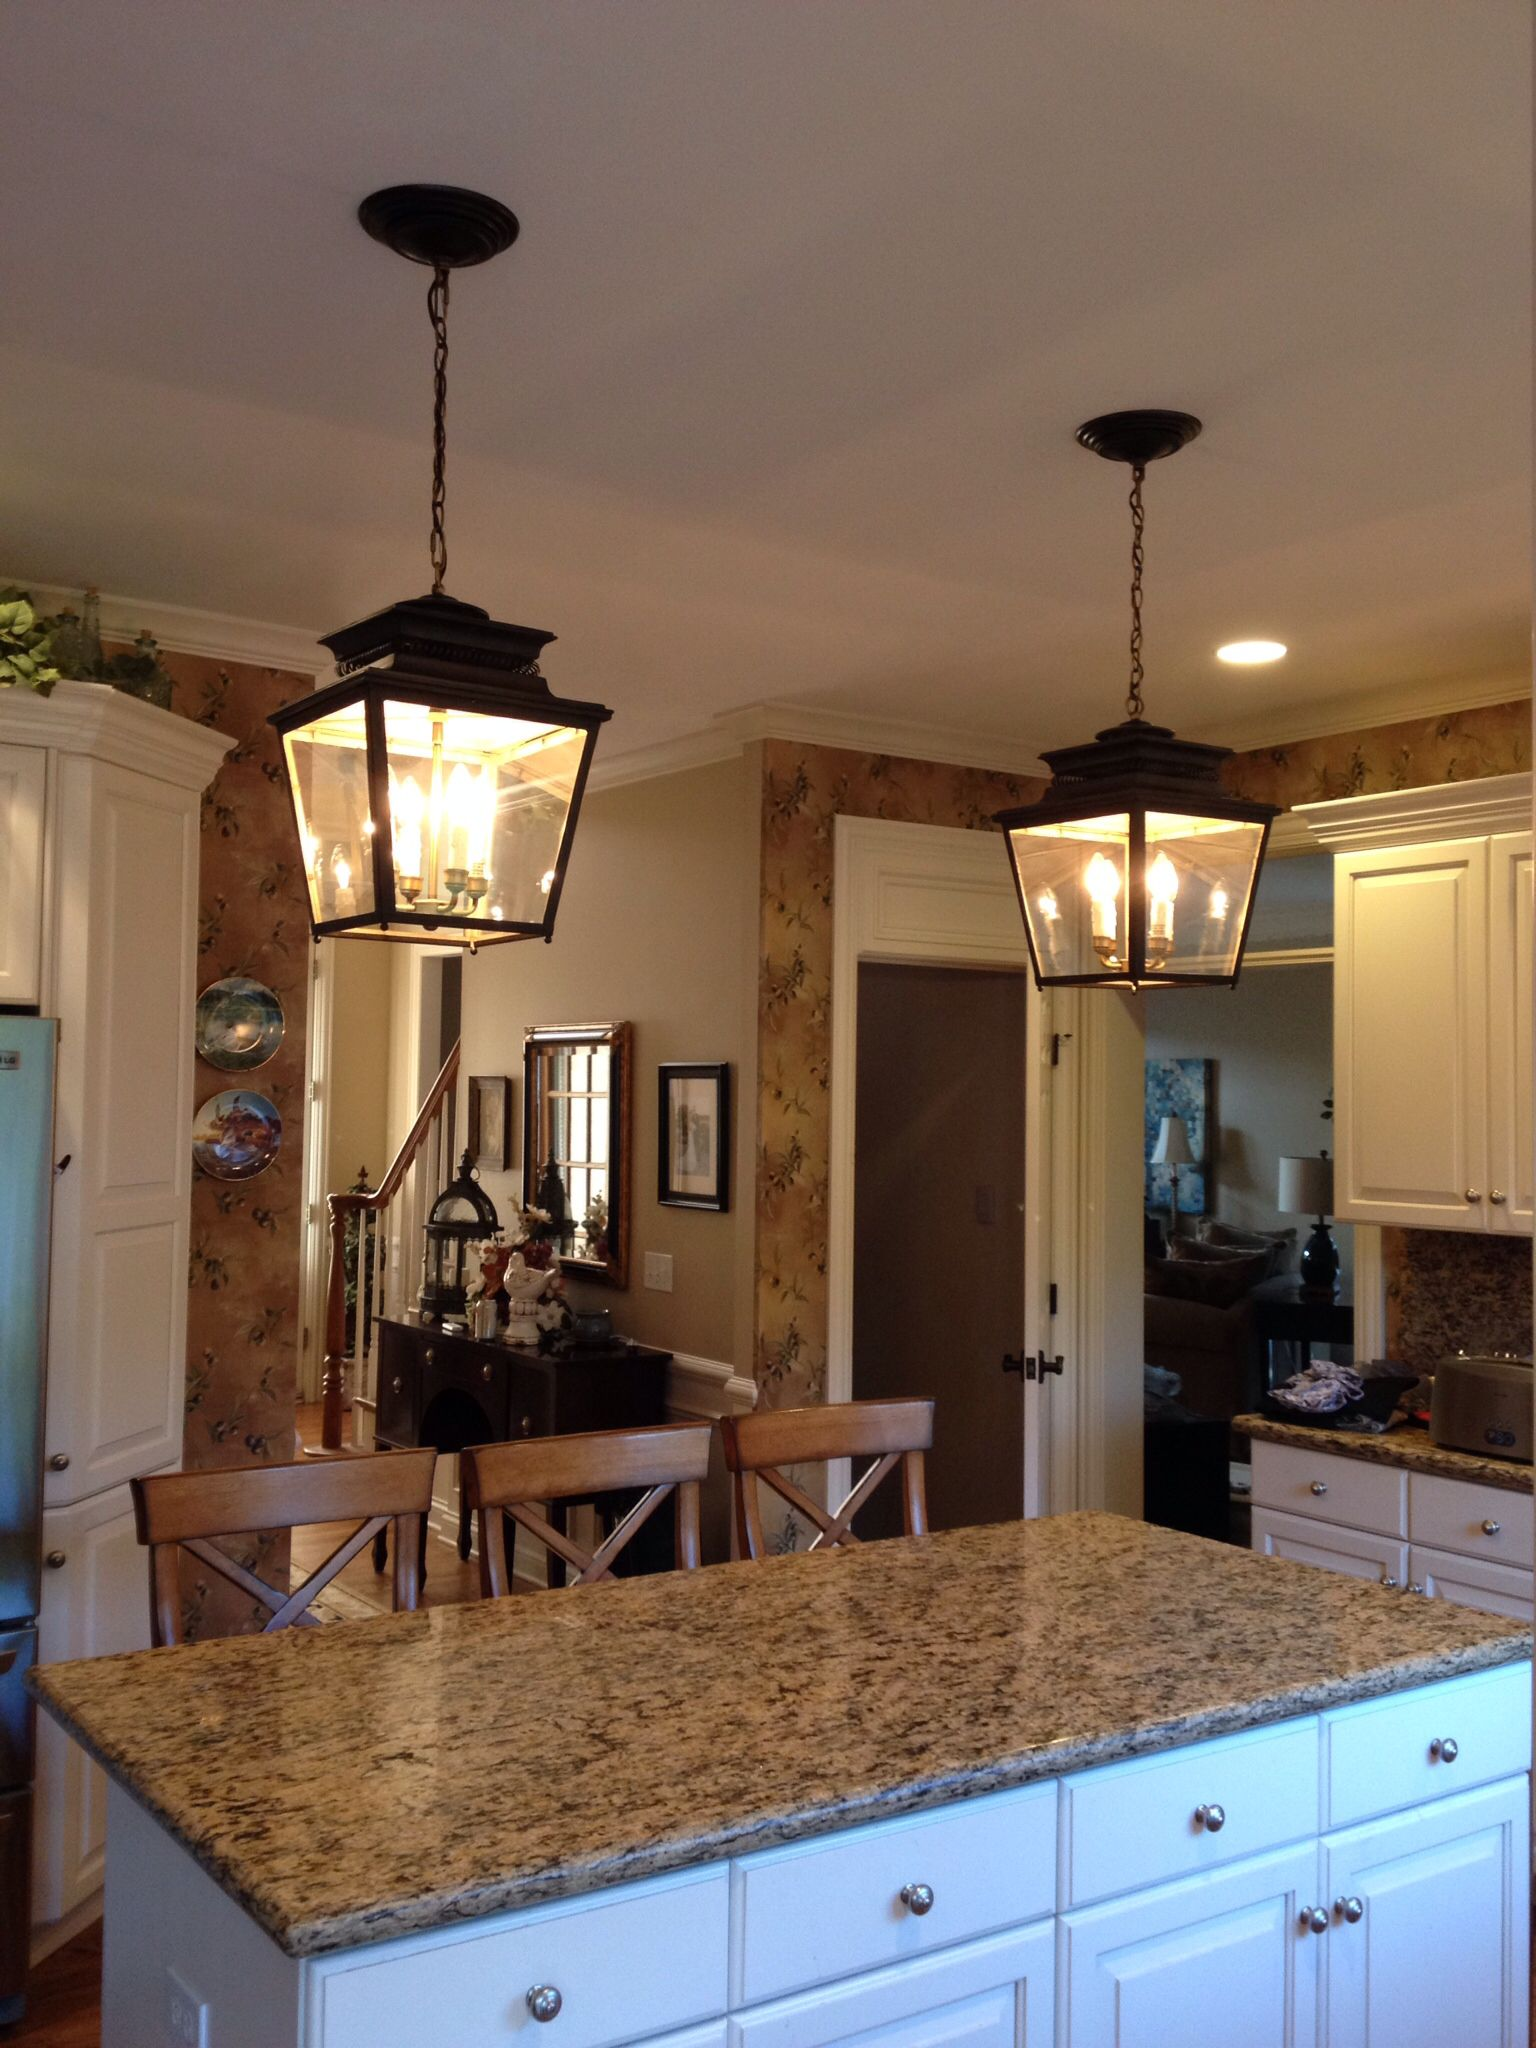 Lantern Lights - Ballard designs Piedmont lanterns over my island ...